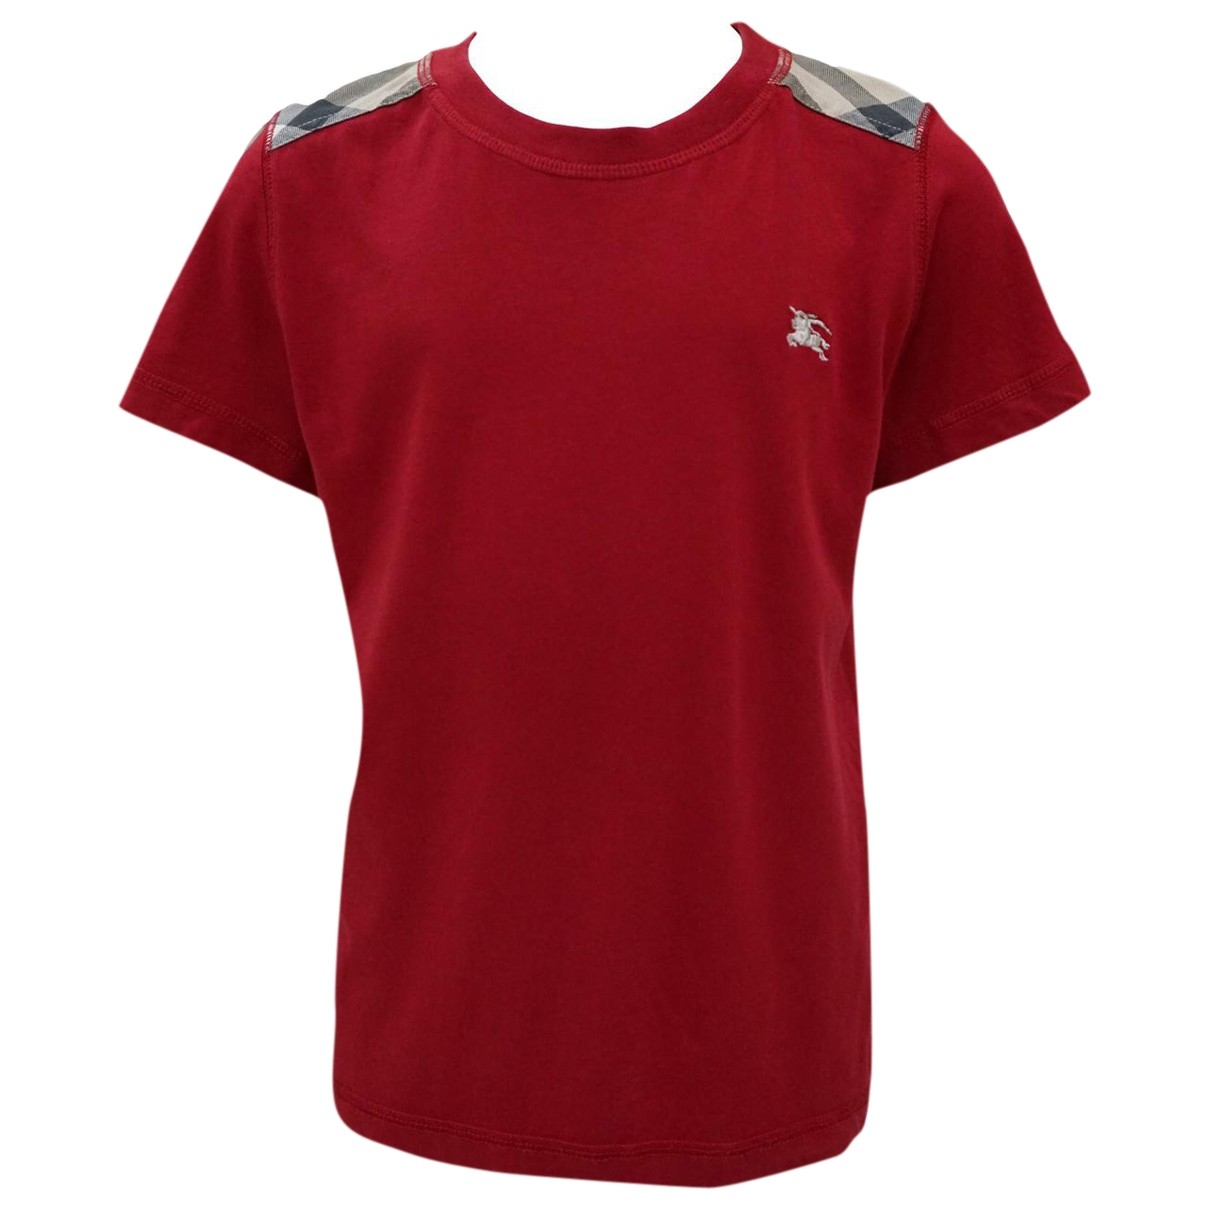 Burberry \N Red Cotton  top for Kids 12 years - XS UK